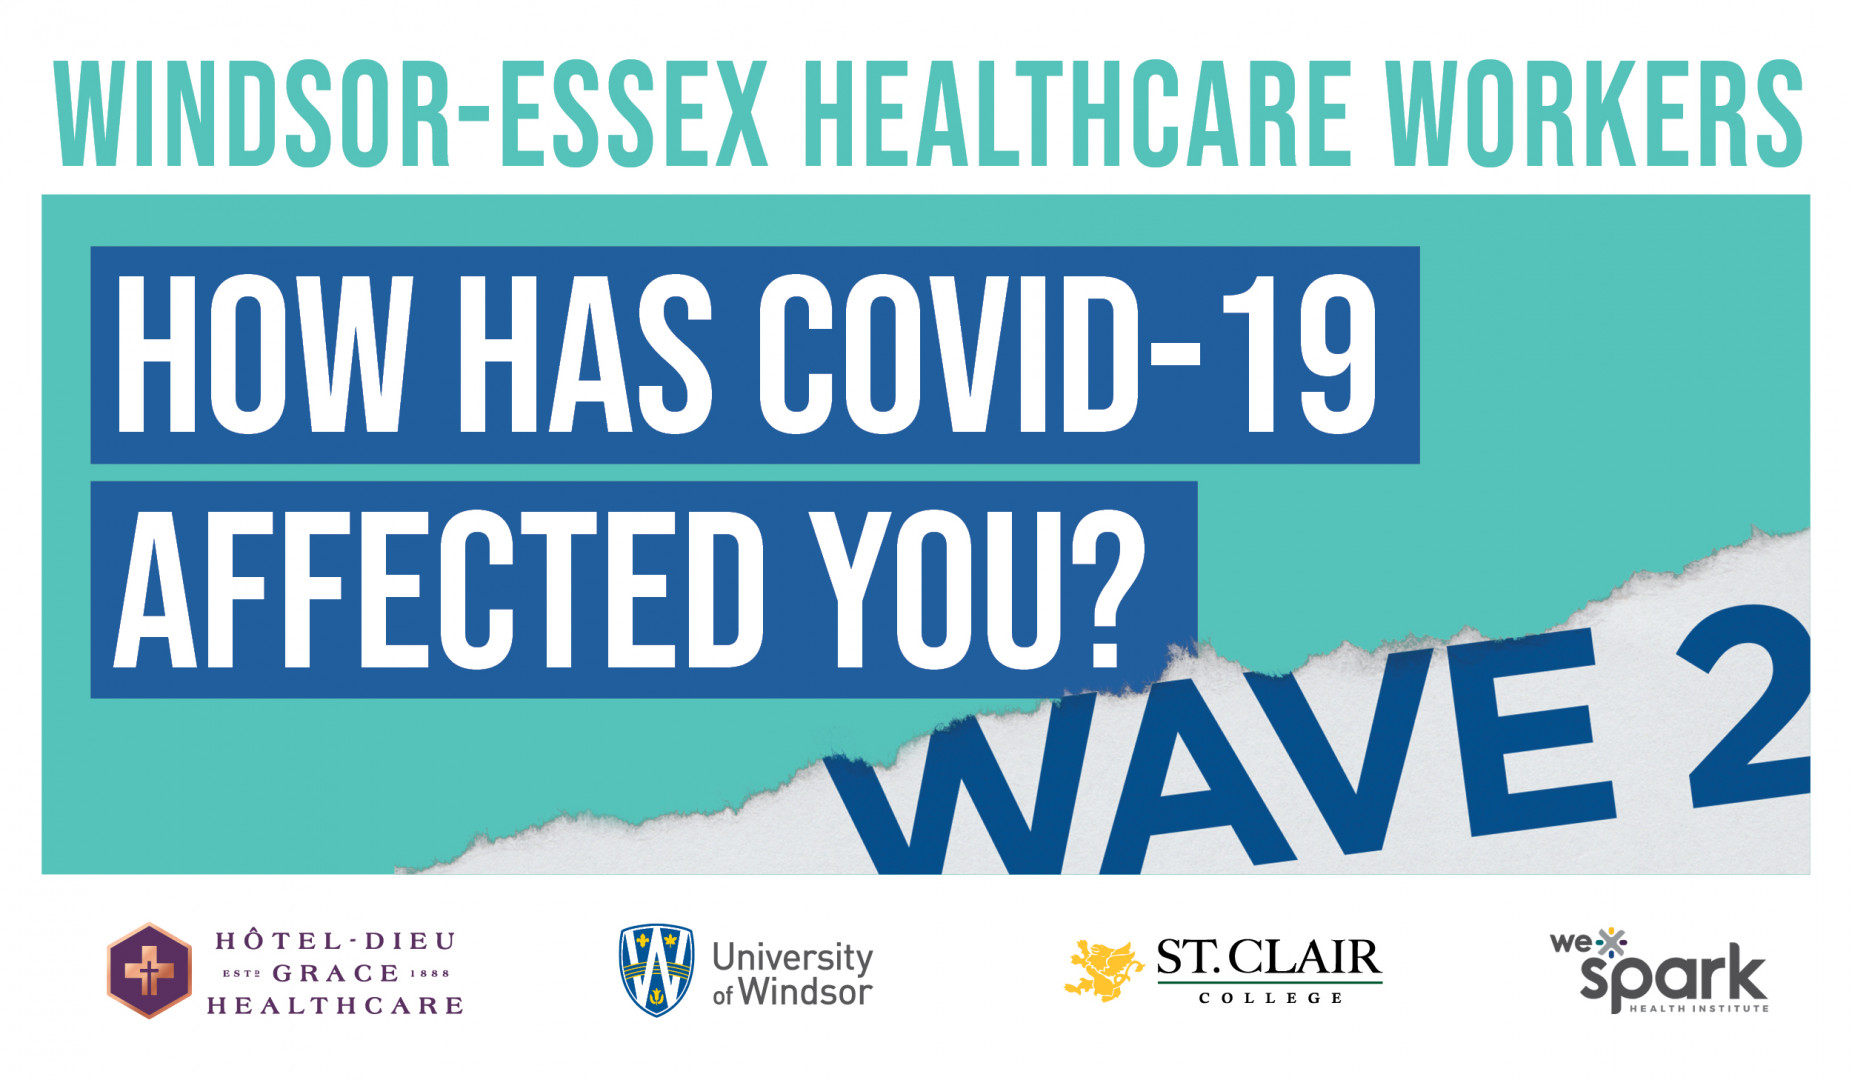 Study of COVID-19's psychological impact on local healthcare workers enters second phase